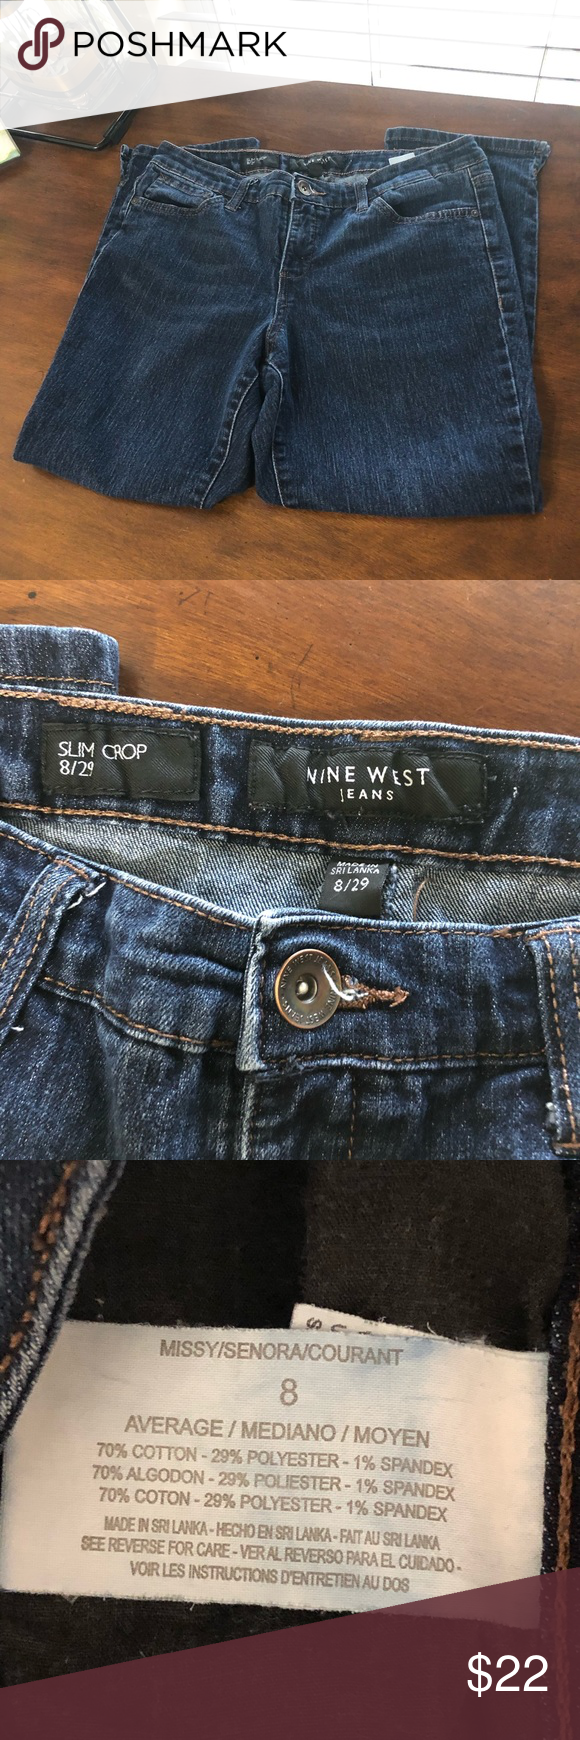 Nine West Slim Cropped Jeans Size 8 29 Euc Size 8 29 Waist 15 Inches Inseam 24 Inches Measurements Are Approxim Cropped Jeans Nine West Jeans Size